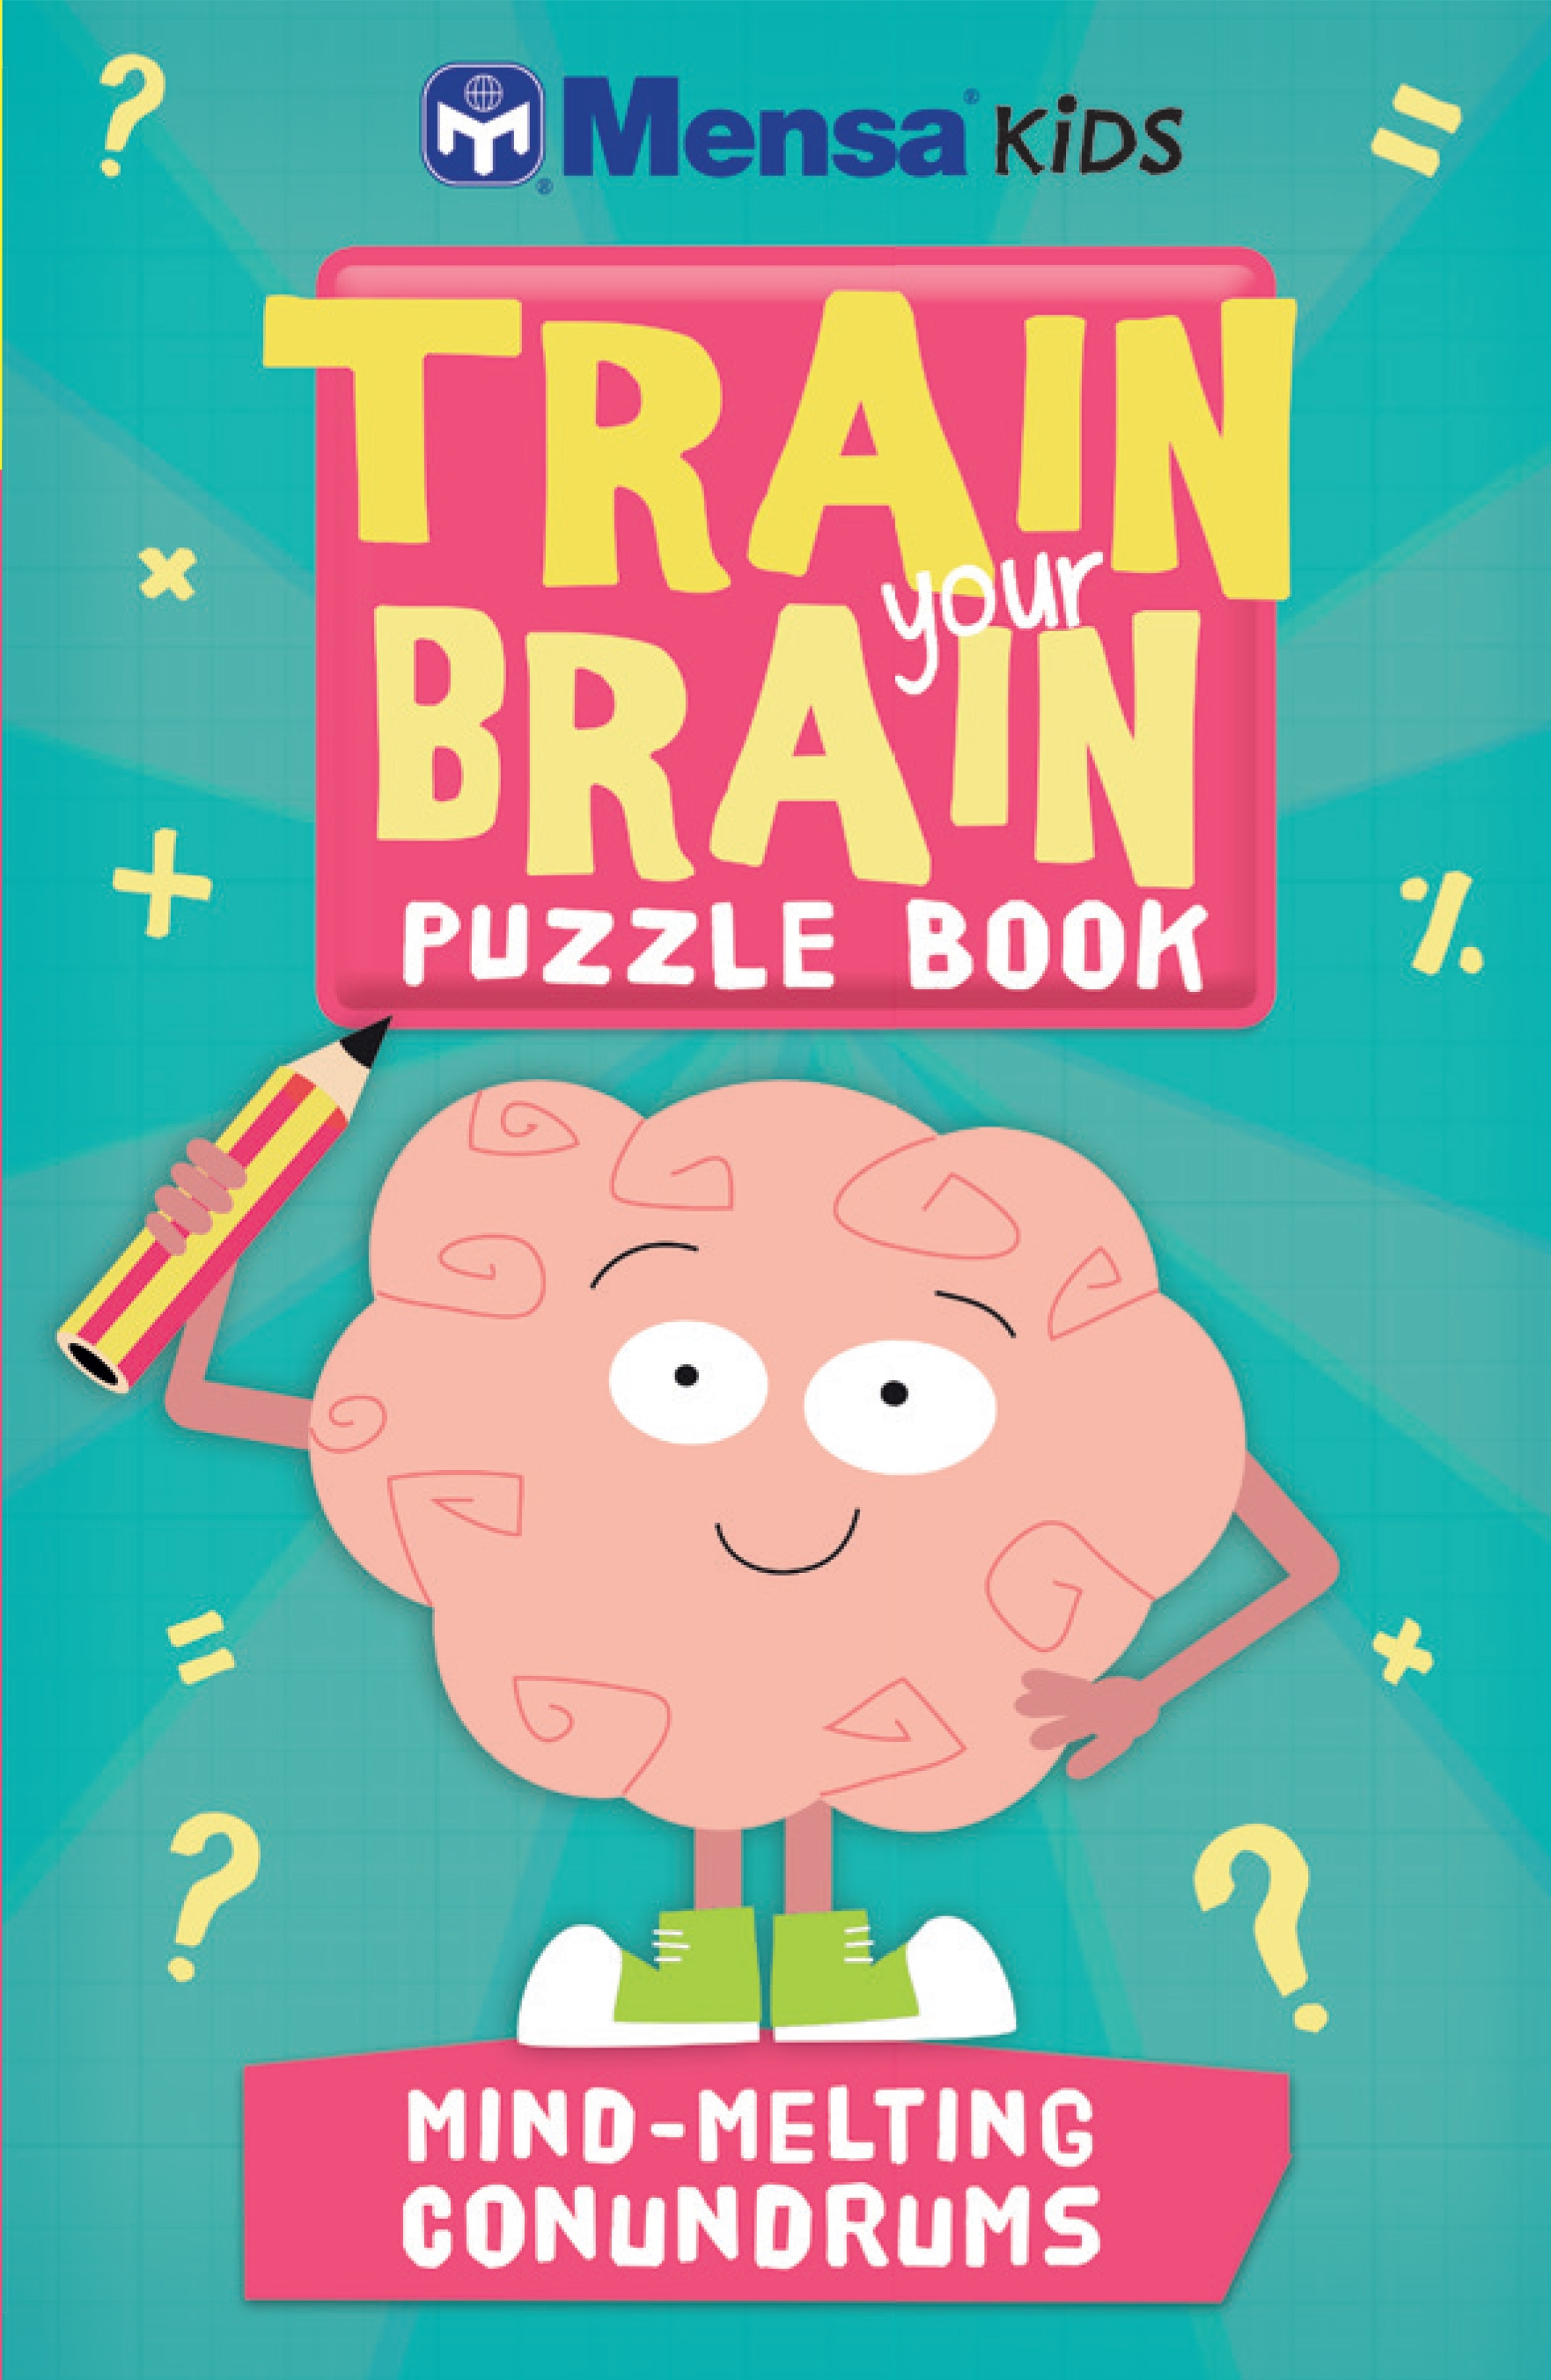 how to train your brain book